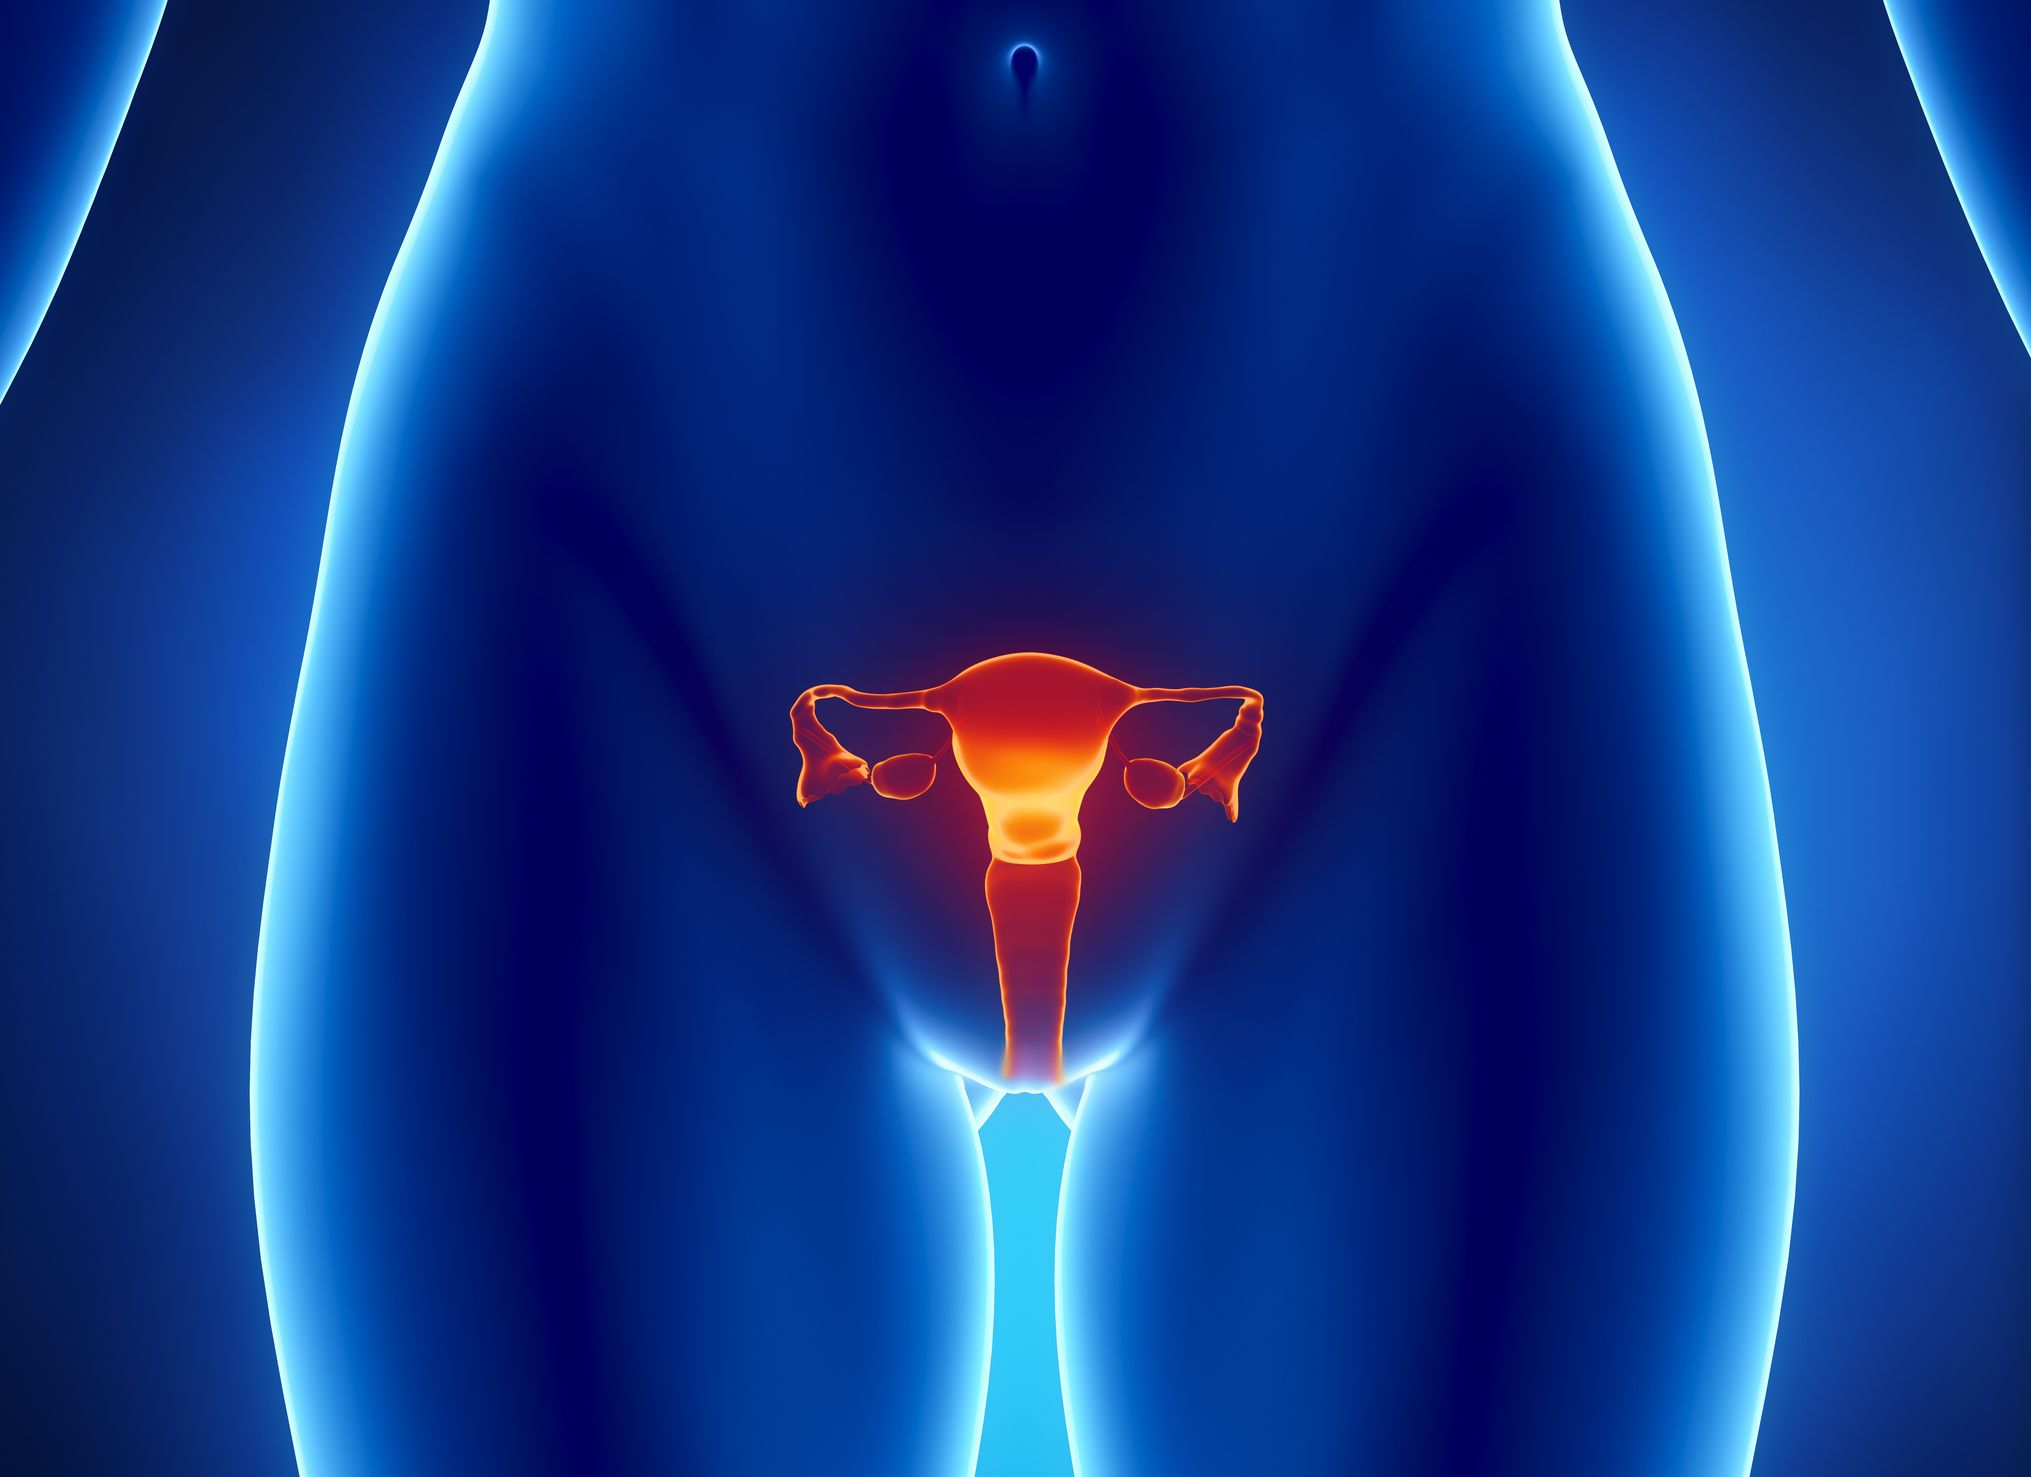 Digital illustration of a woman's reproductive system